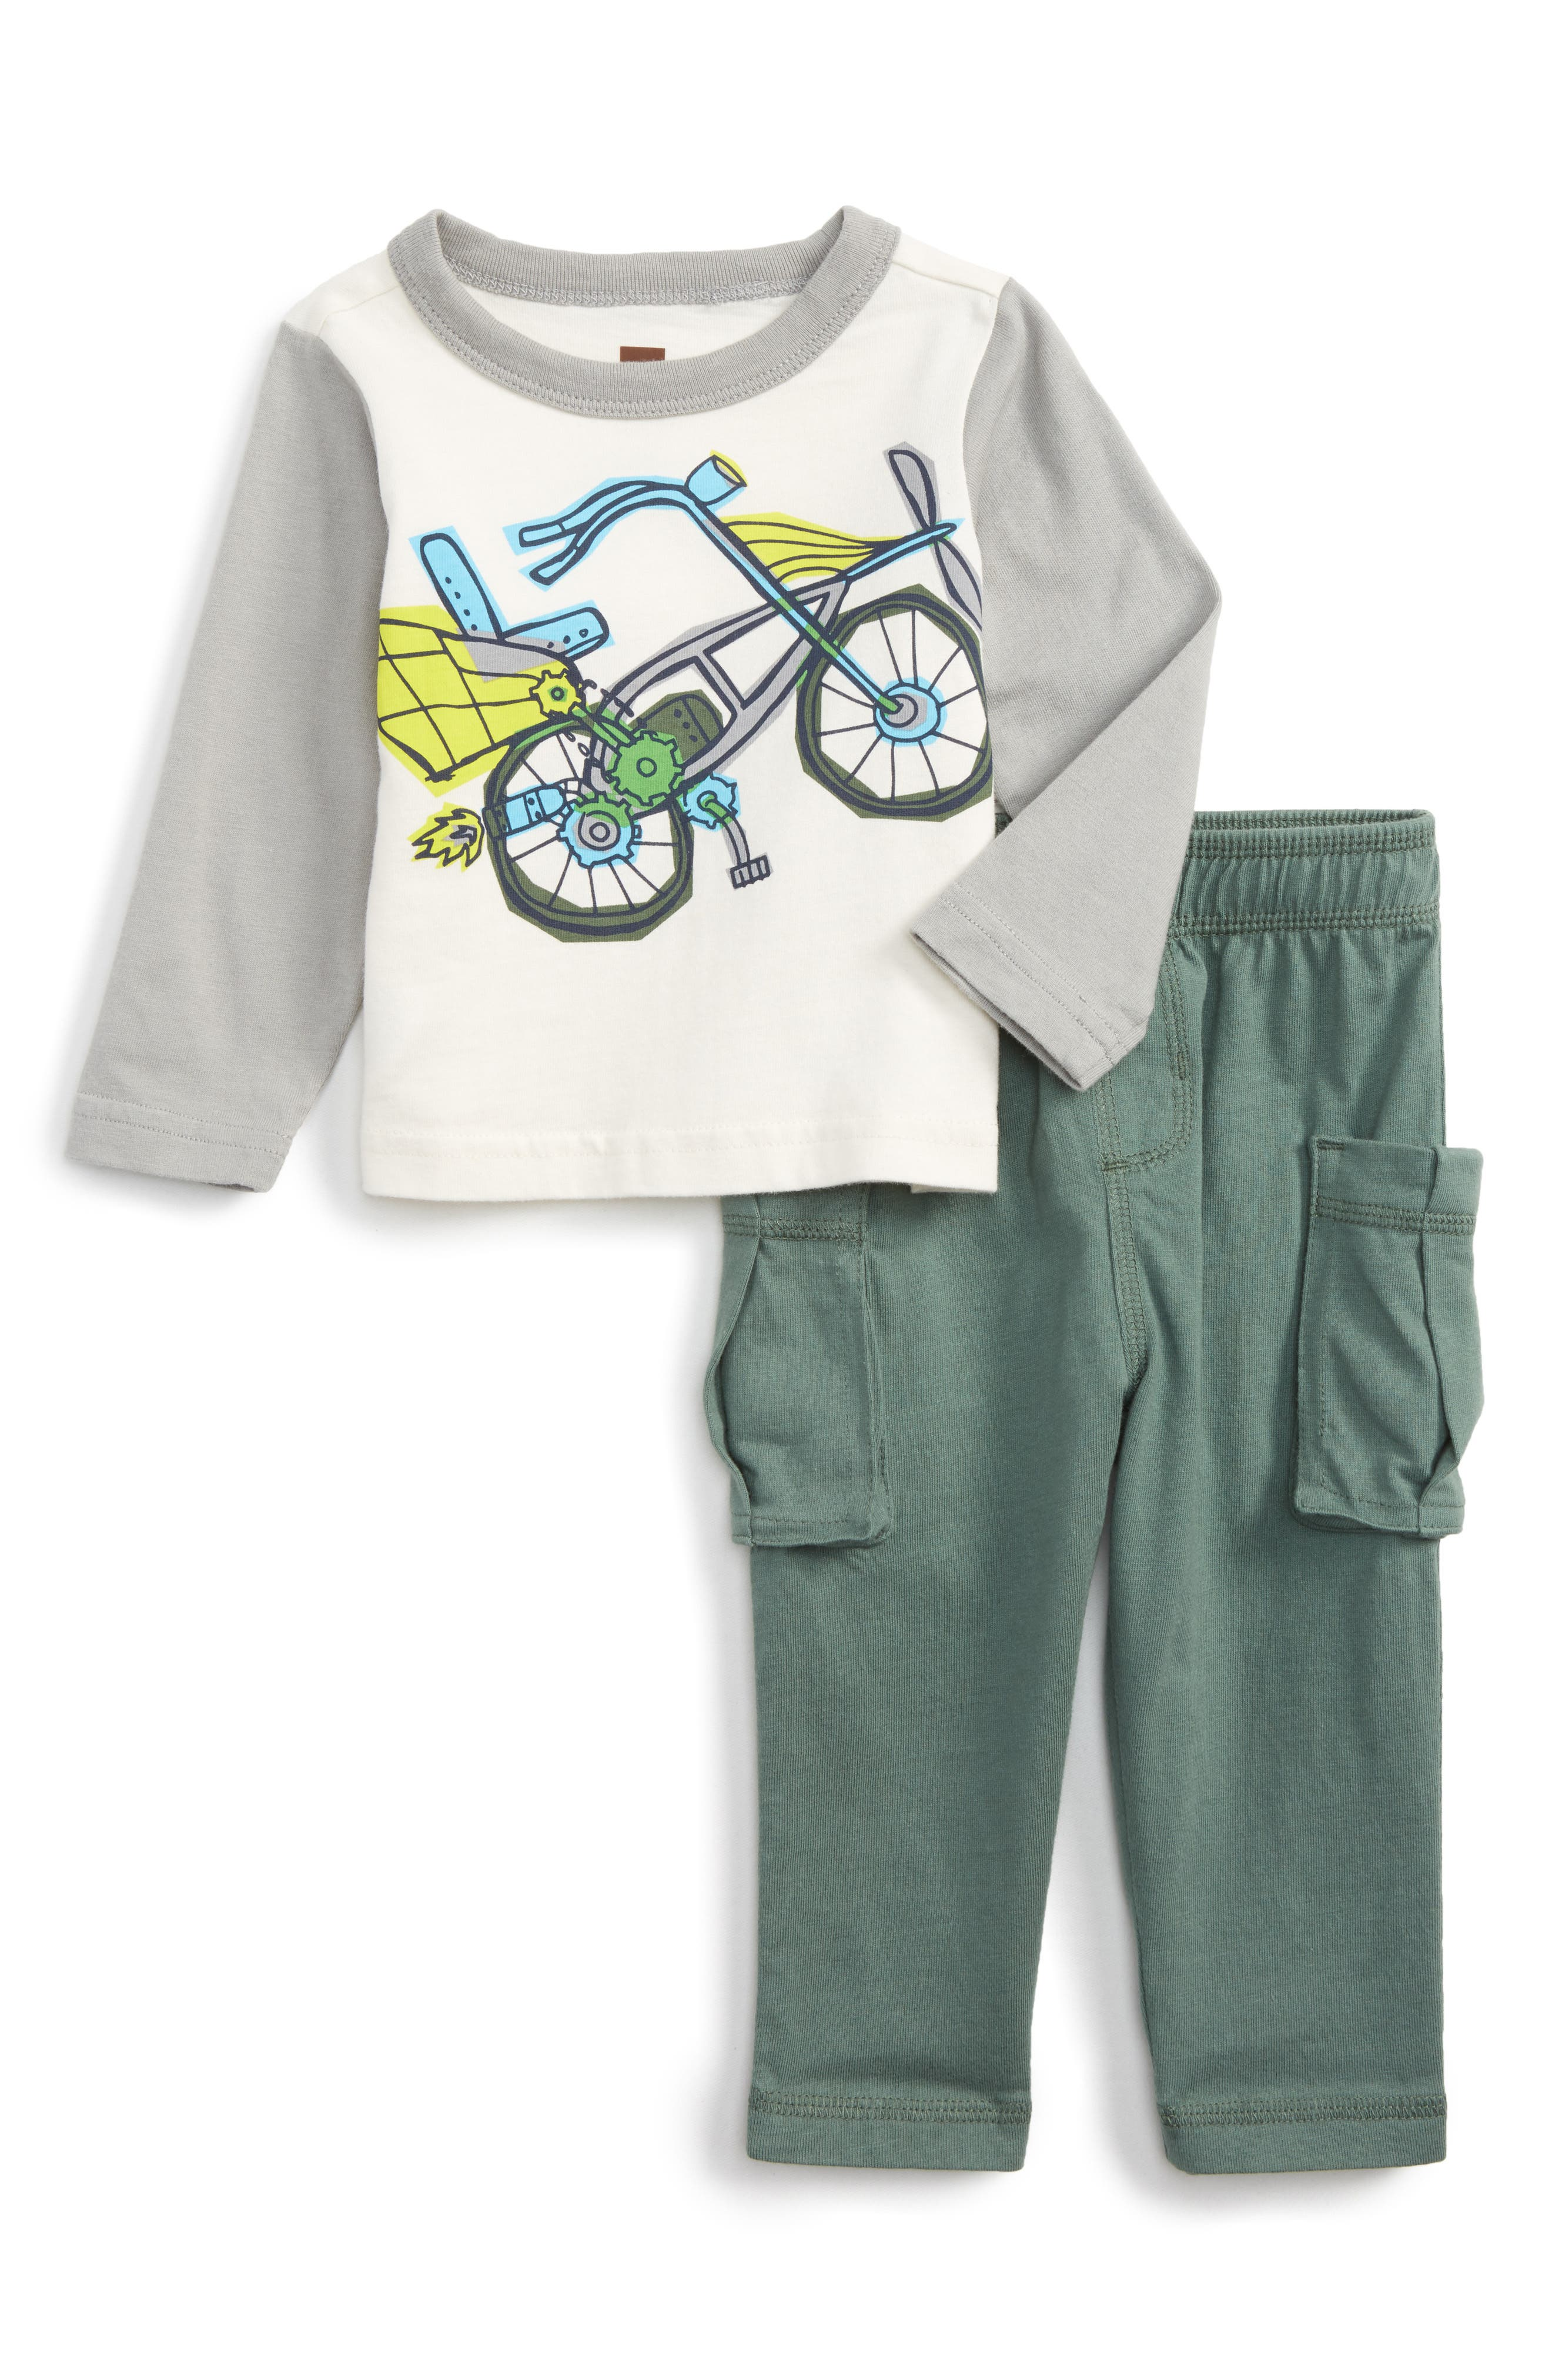 Alternate Image 1 Selected - Tea Collection Flying Scot T-Shirt & Pants Set (Baby Boys)